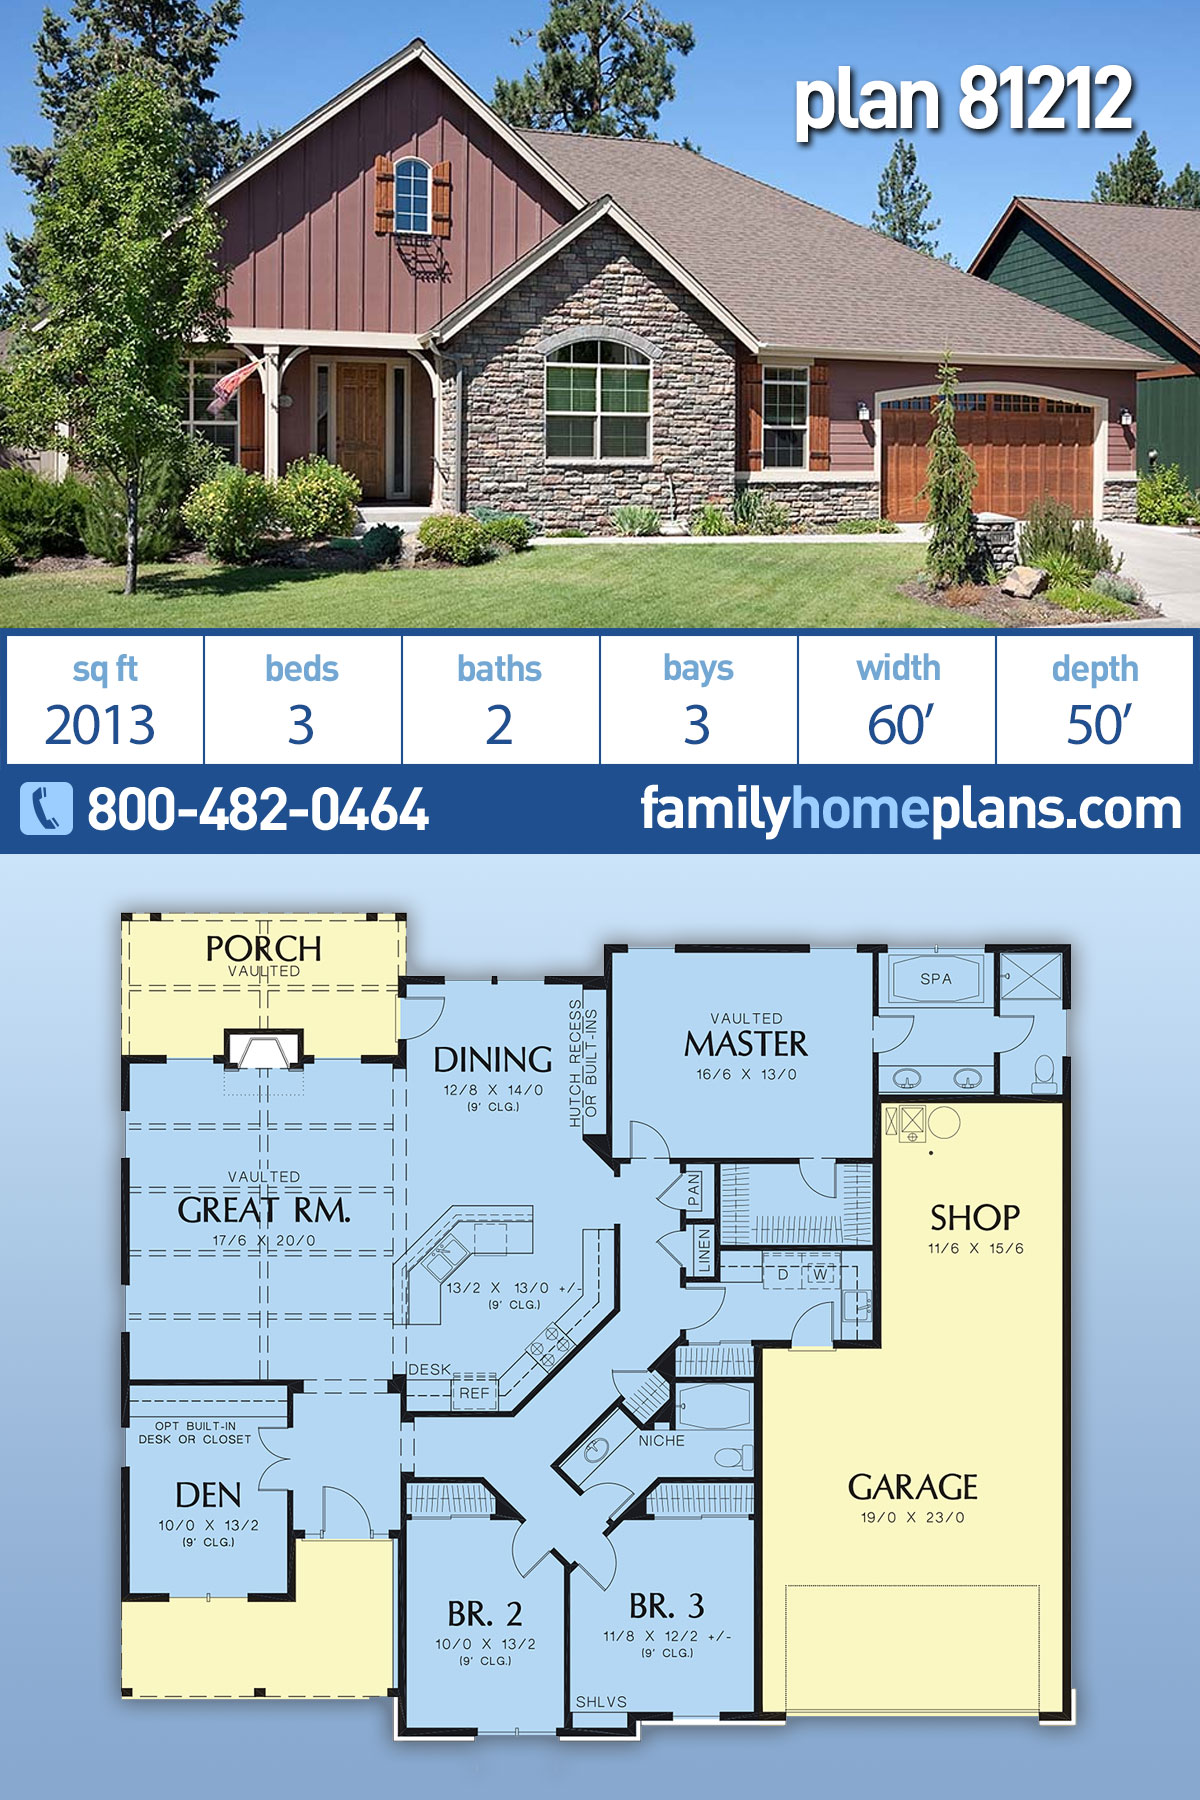 Craftsman , Ranch , Traditional House Plan 81212 with 3 Beds, 2 Baths, 3 Car Garage